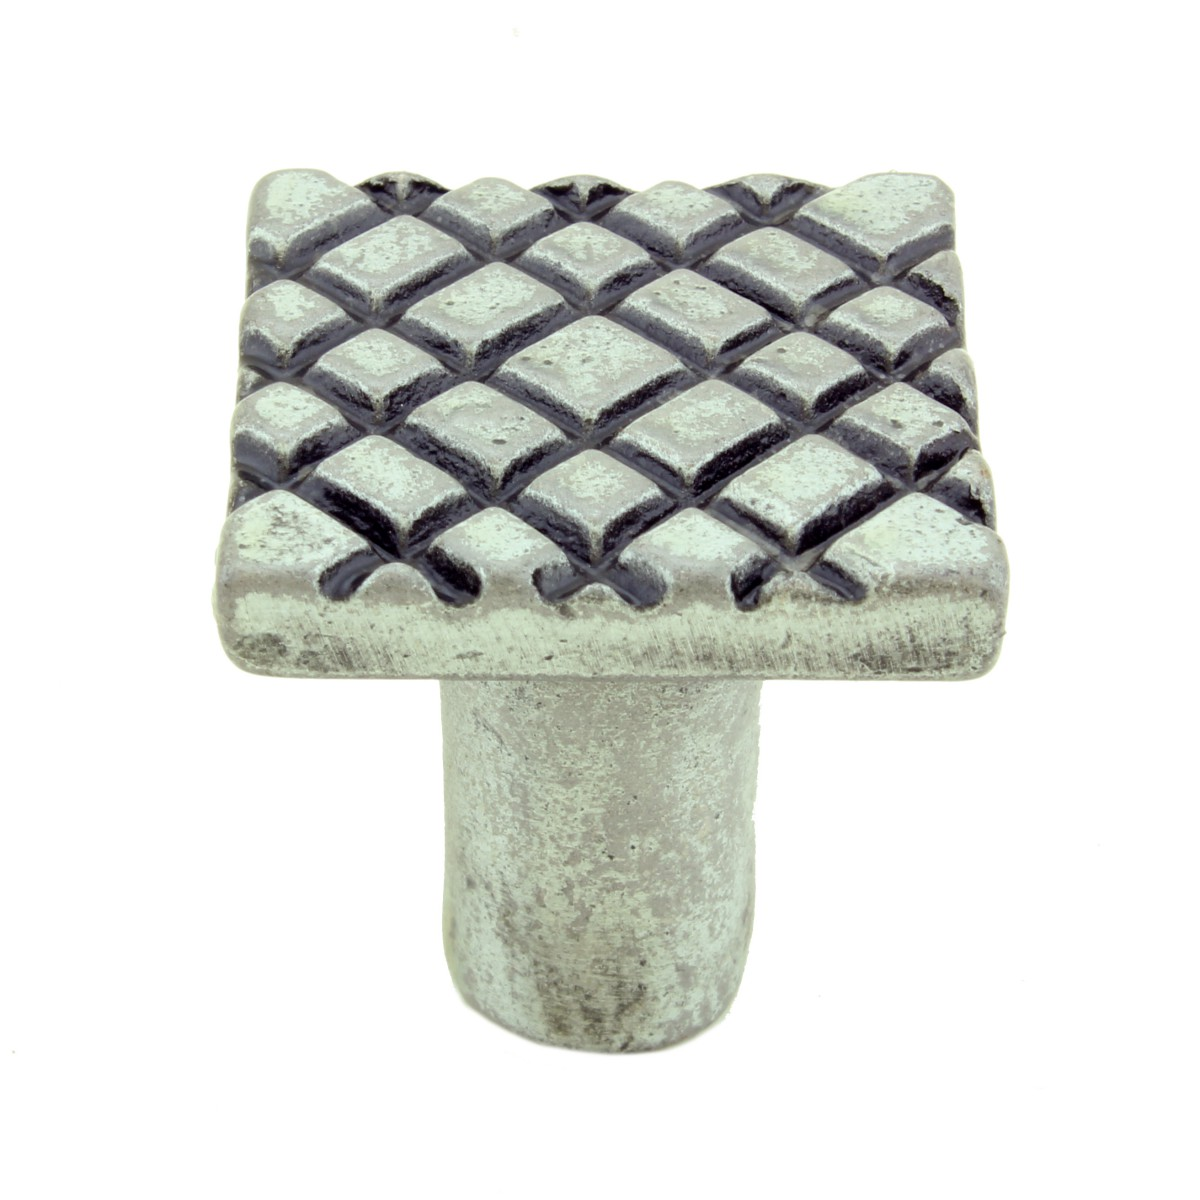 Iron Cabinet Knob Pewter Finish Square Diamond Cabinet Hardware Pack of 2 Cabinet Knob Cabinet Hardware Iron Cabinet Knob